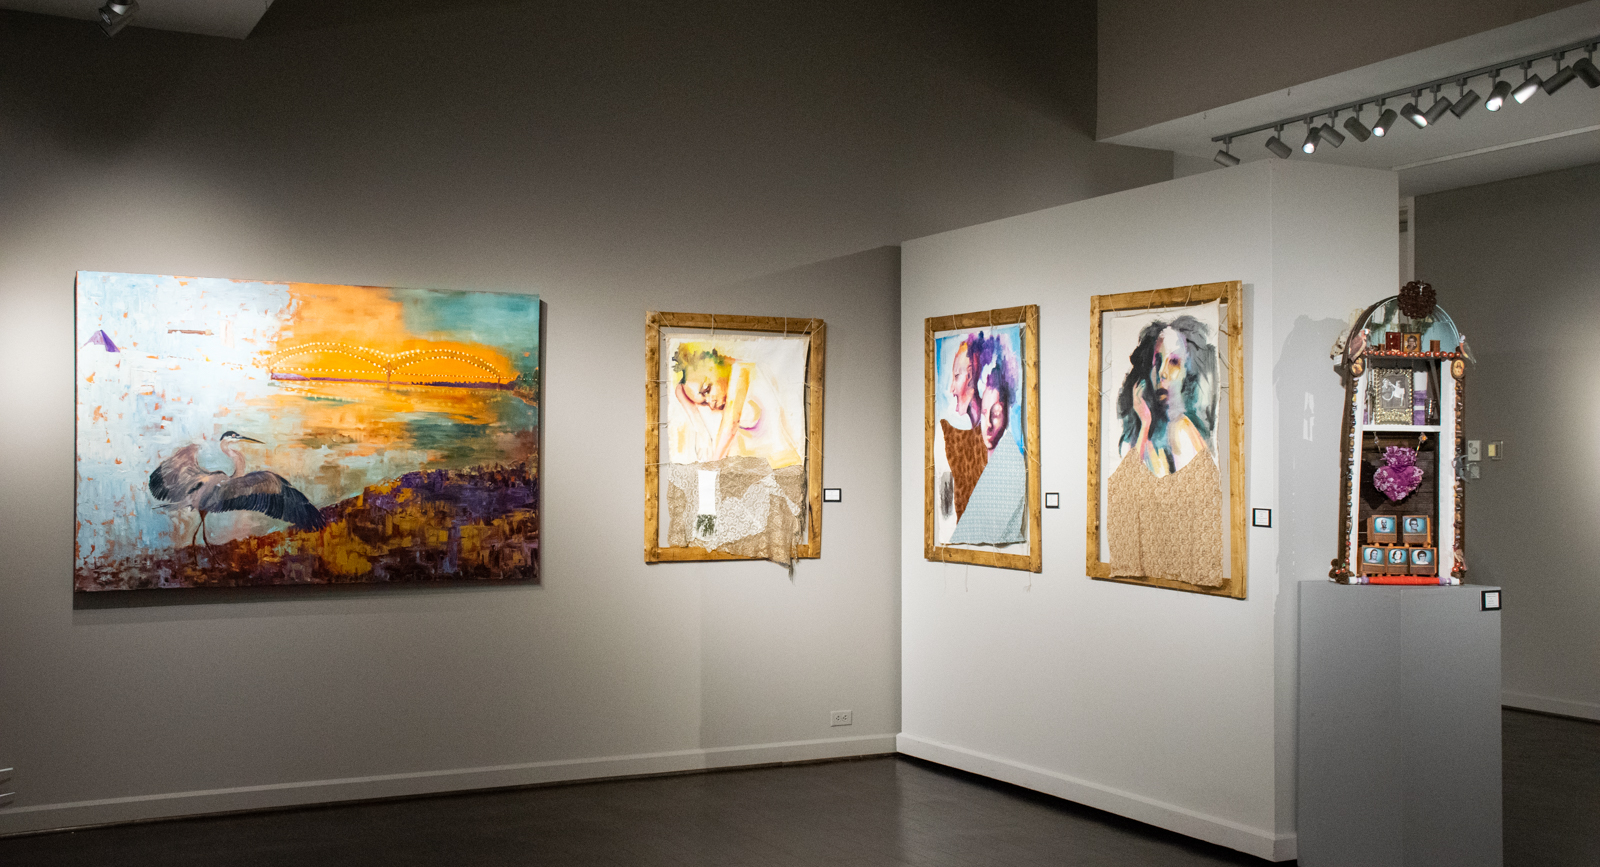 69ee3371bd33 Jeannie Stone, Angela Johnson Davis, and Suzannah Schreckhise are three of  the artists featured